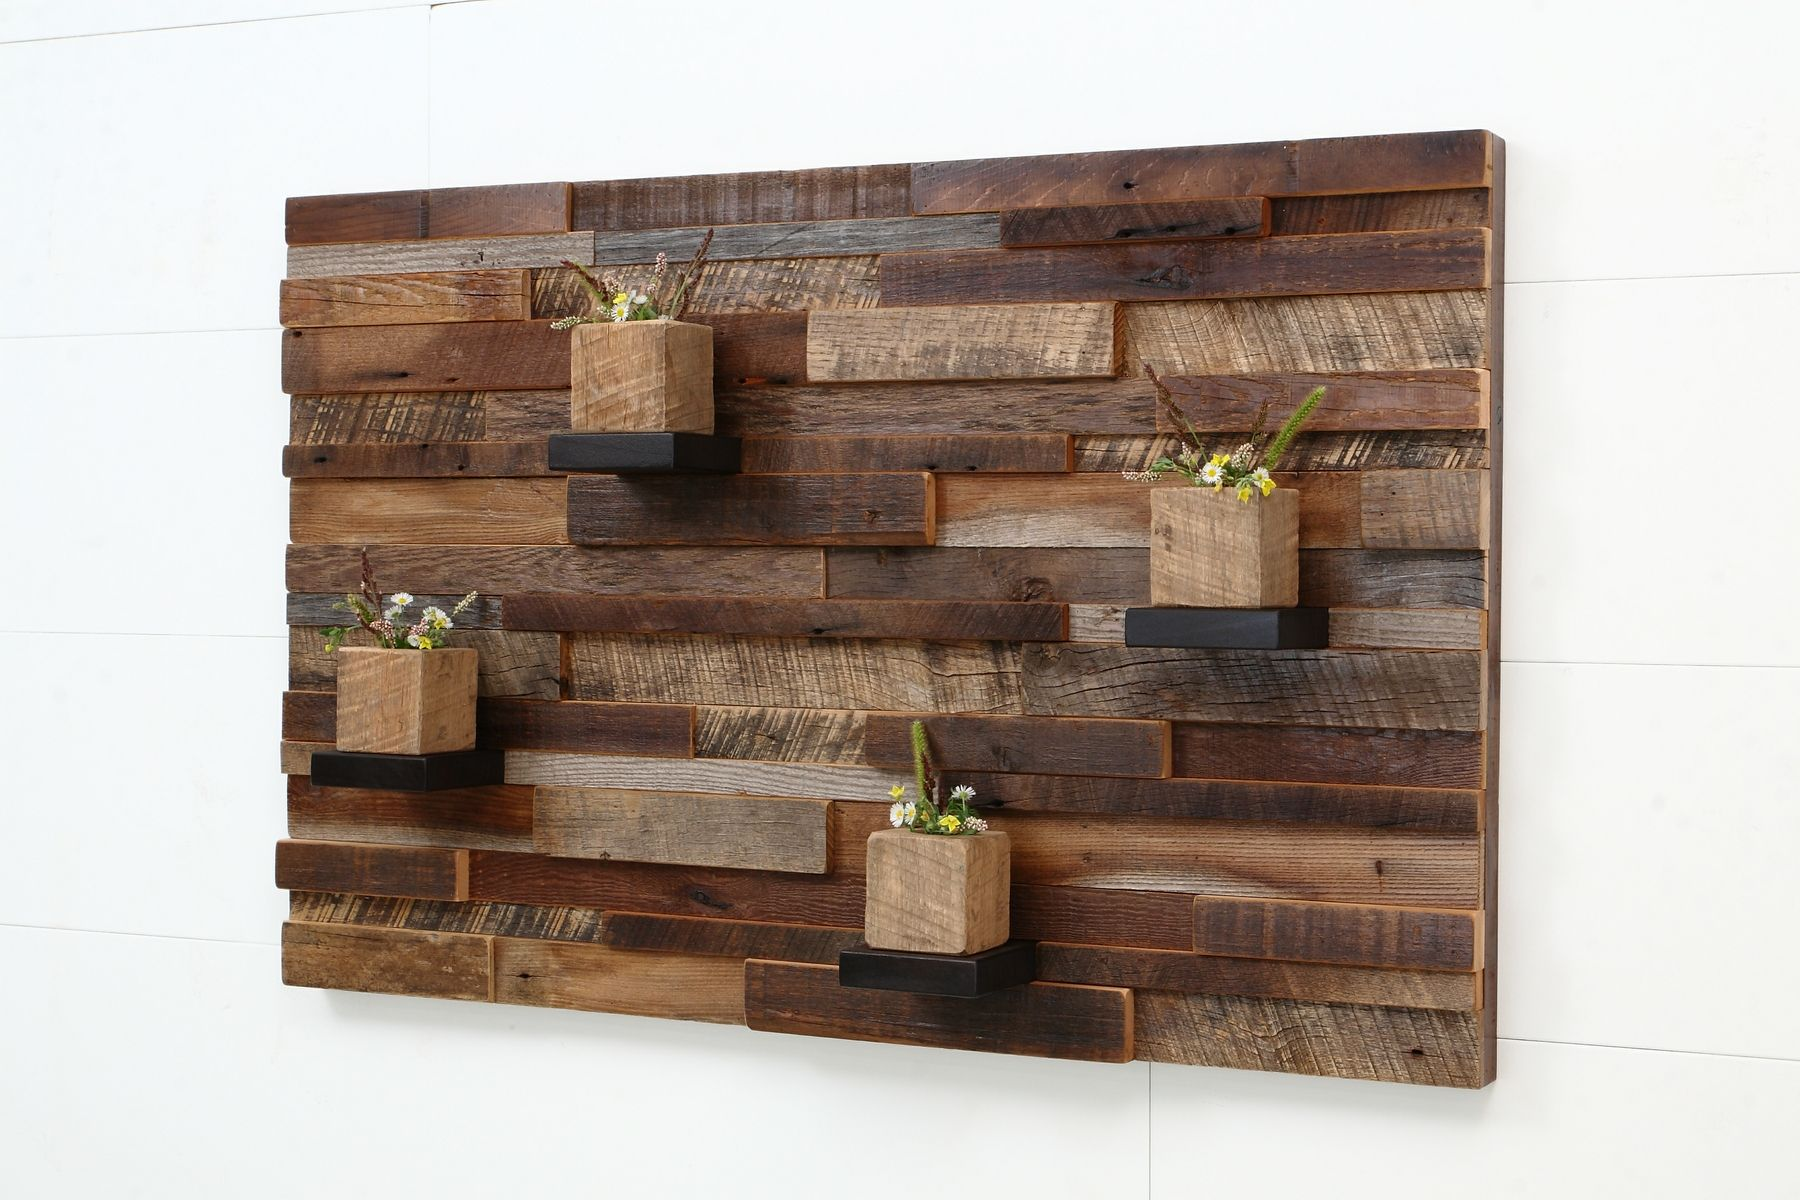 Reclaimed wooden pallet wall art recycled things Reclaimed wood wall art for sale